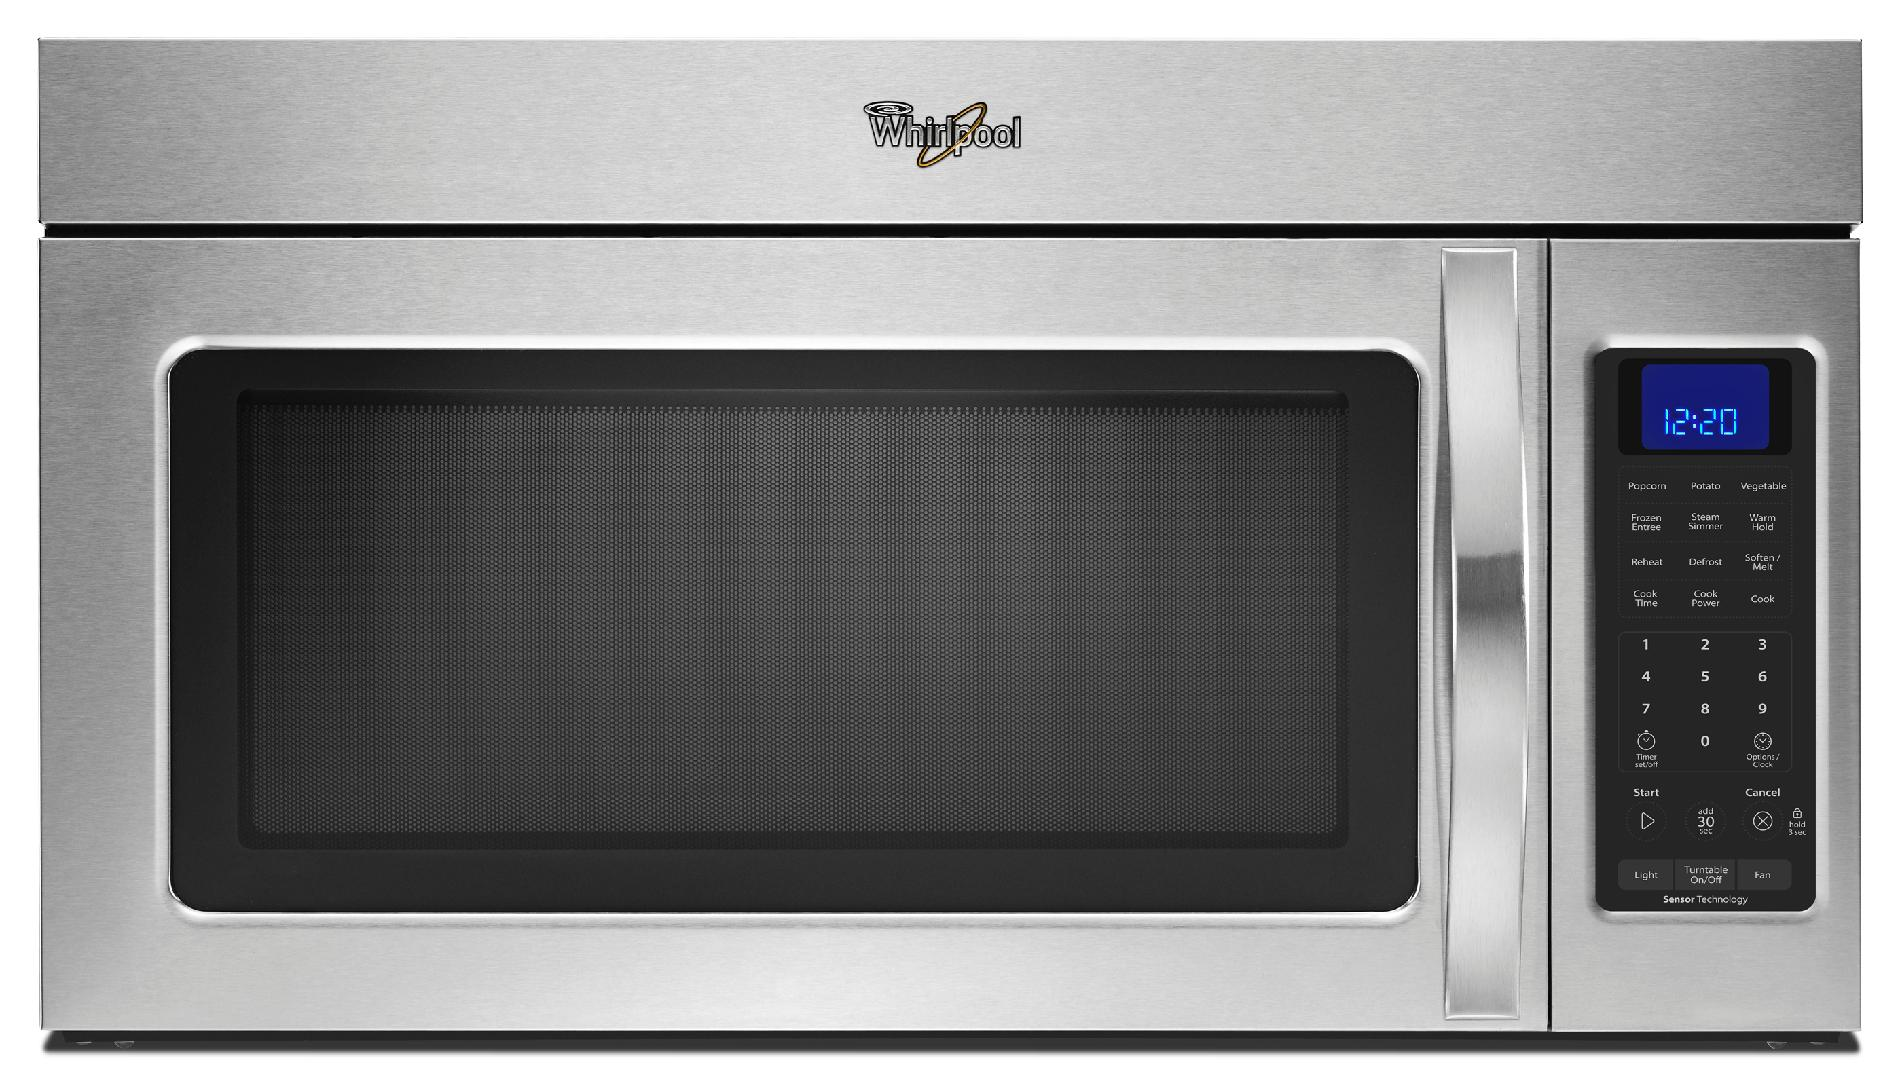 Whirlpool WMH32519CS 1.9 cu. ft. Over-the-Range Microwave w/ Steam Cooking - Stainless Steel